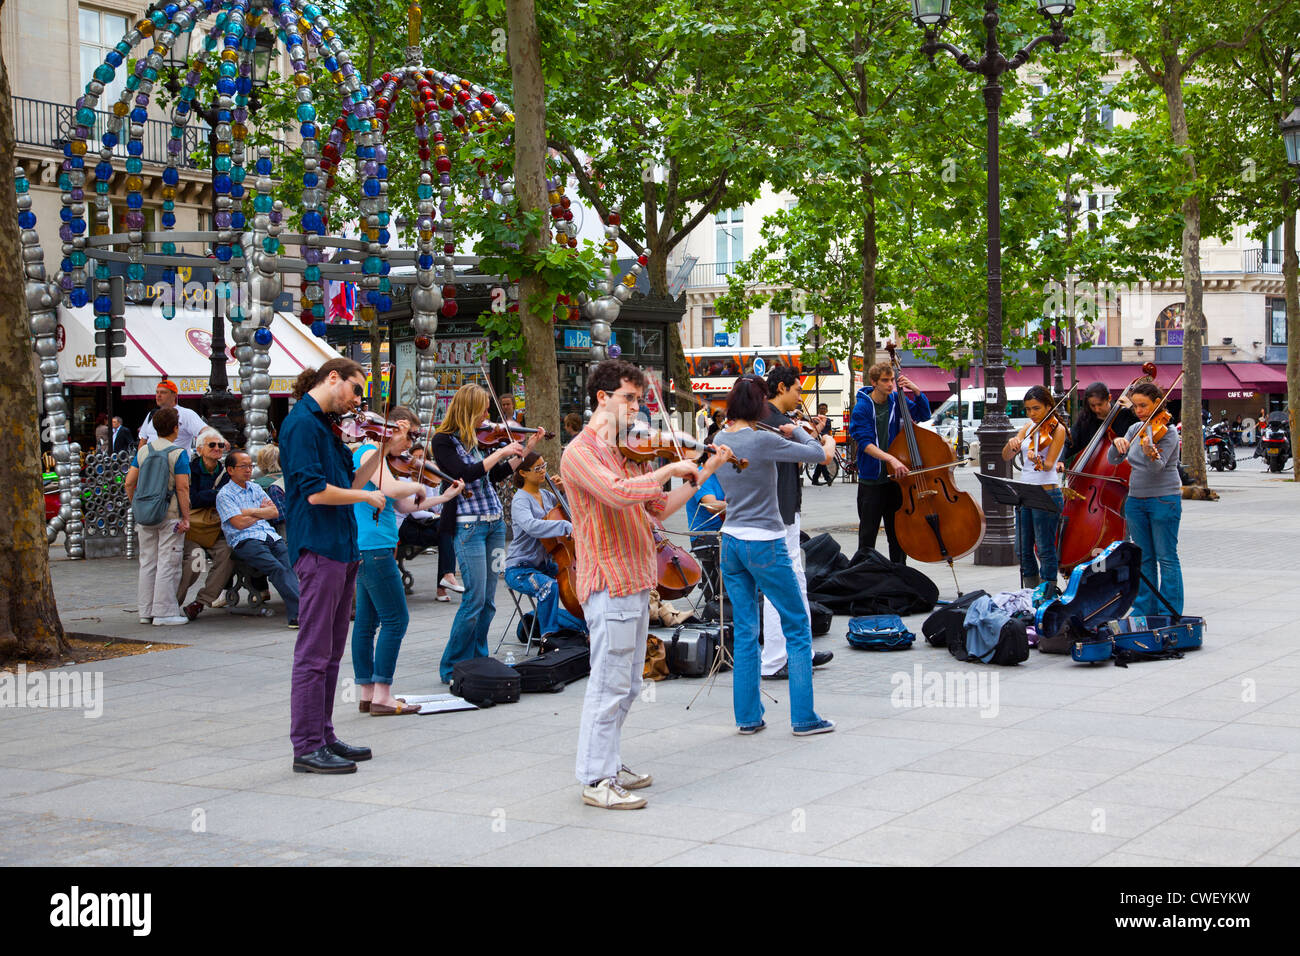 Street buskers performing in Place du Palais Royal in Paris France - Stock Image